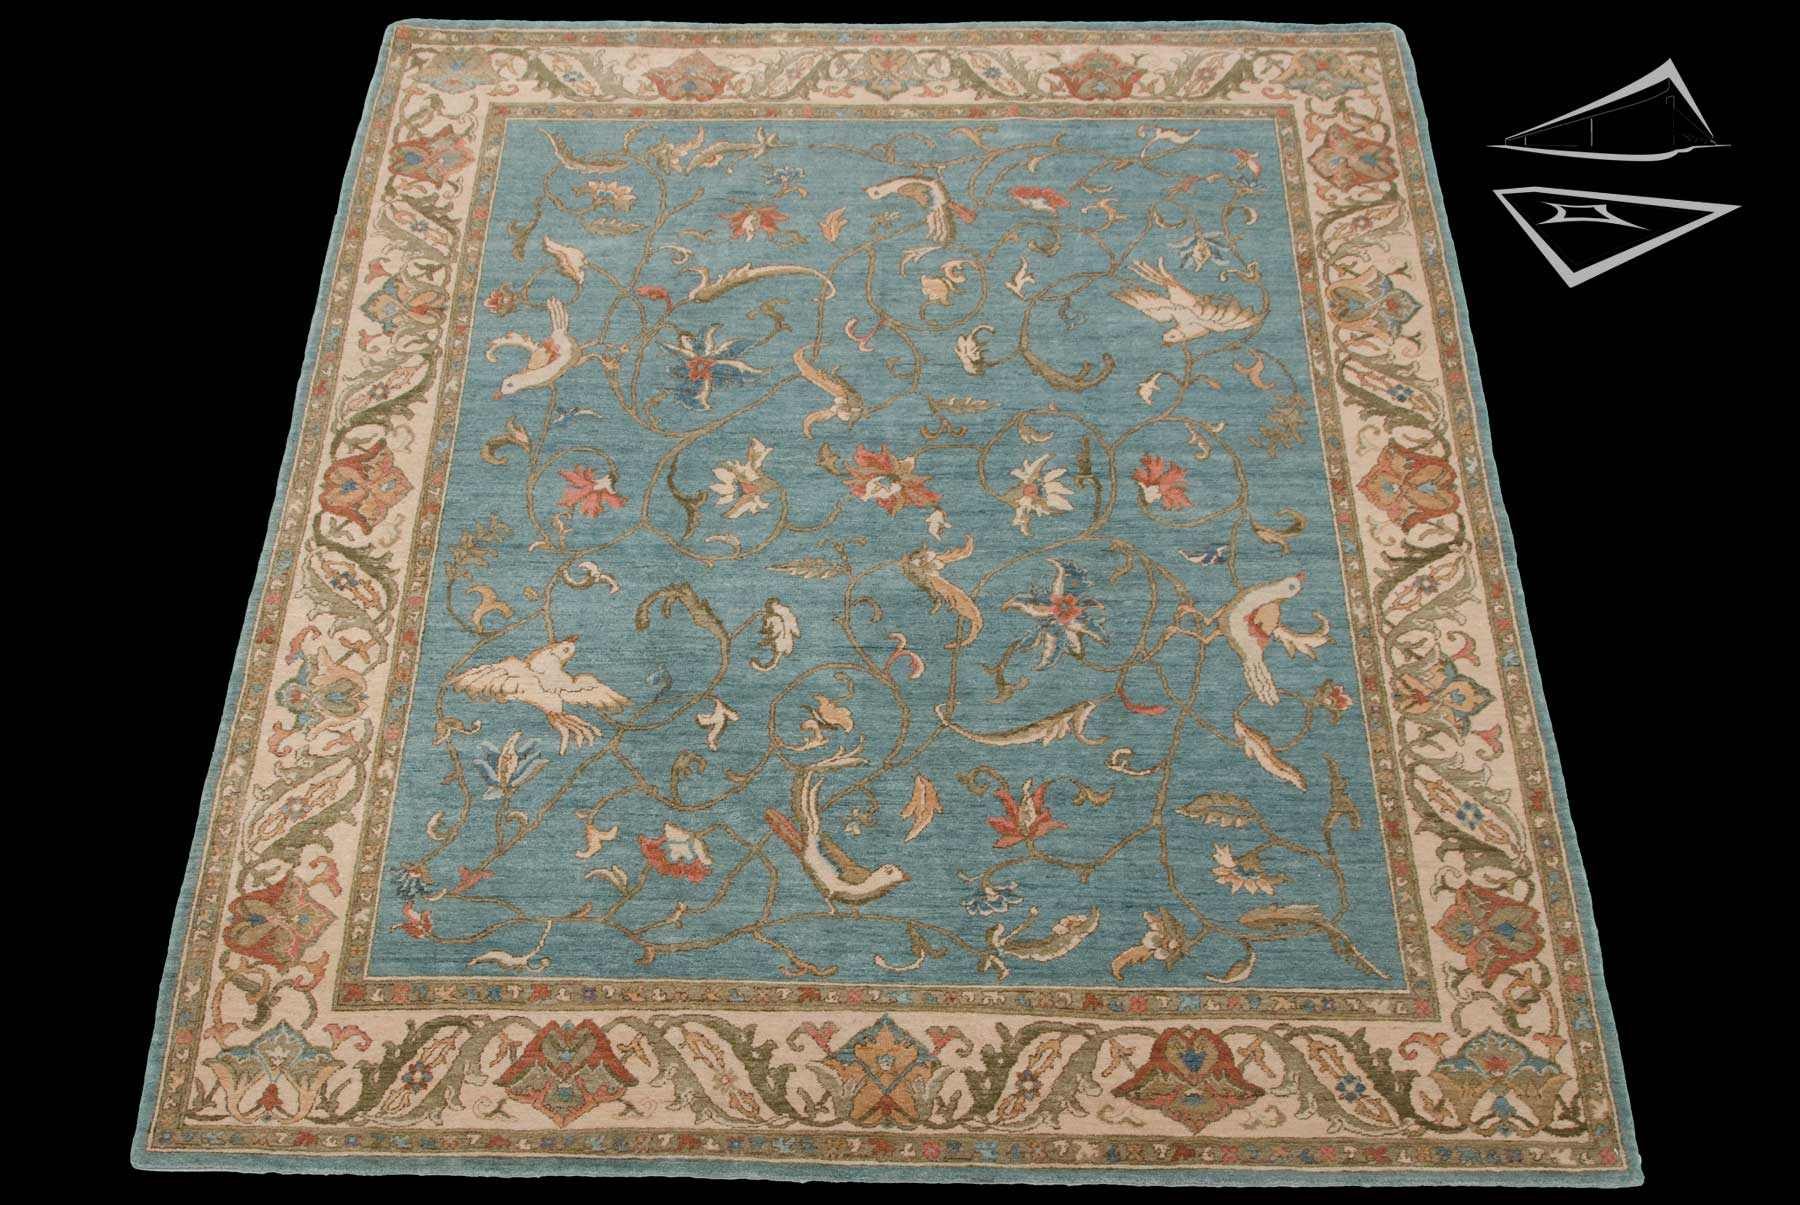 8x10 Bird Design Rug Large Rugs Amp Carpets